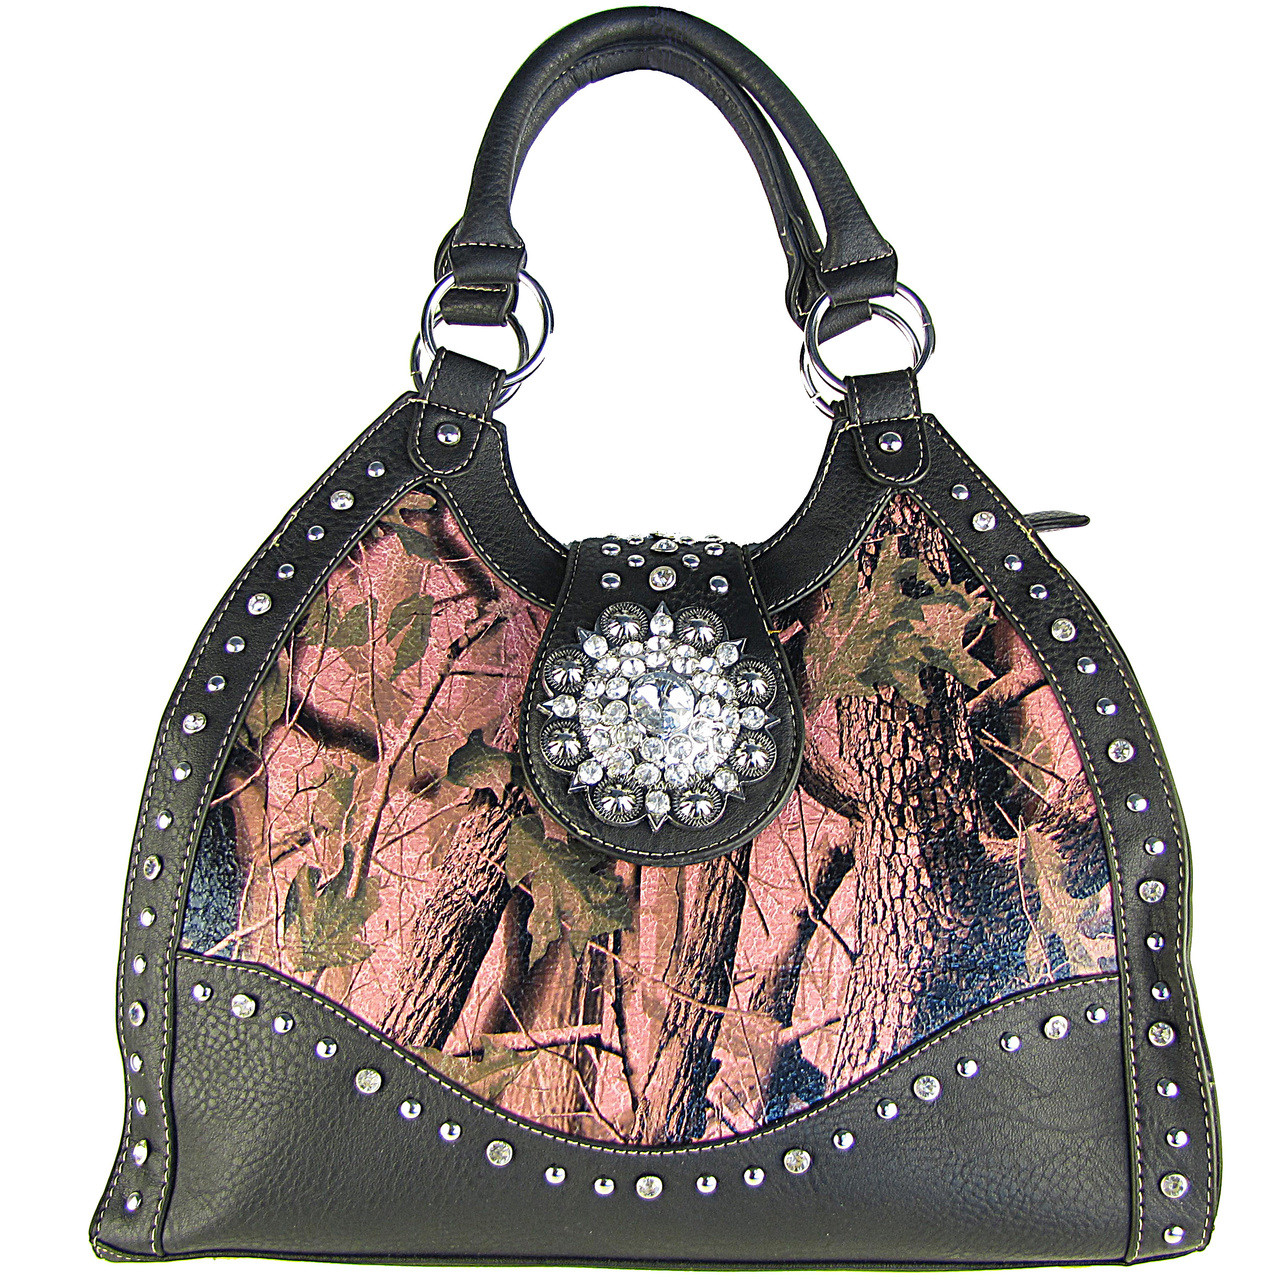 BLACK MOSSY CAMO RHINESTONE FLOWER BUCKLE LOOK SHOULDER HANDBAG HB1-CHF1020BLK